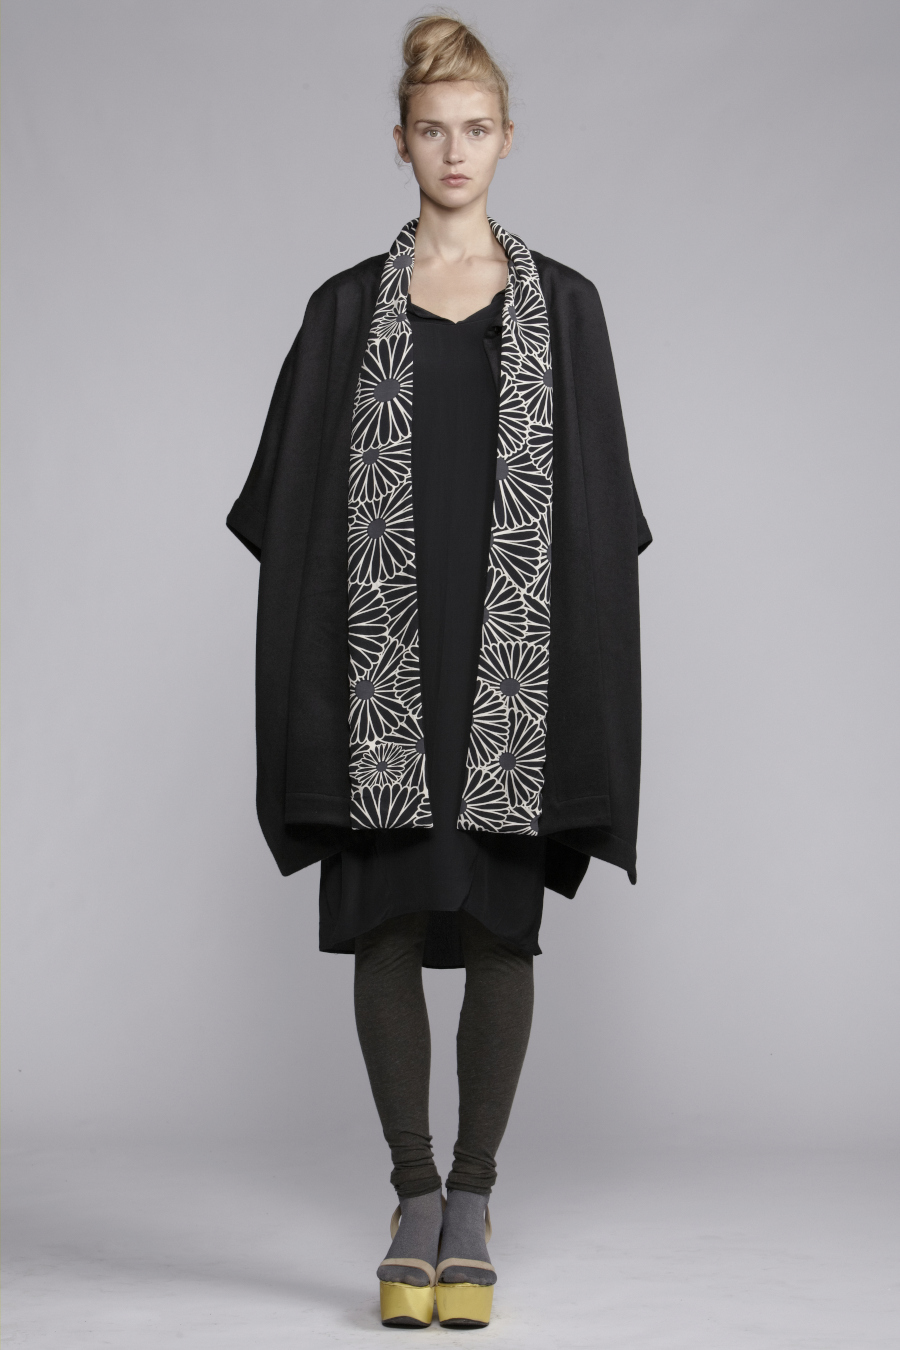 210/A131528 Spiral Shibori Collar Panel Dress     600/A136132 Leggings     850/A138206 Wool Felt Cape